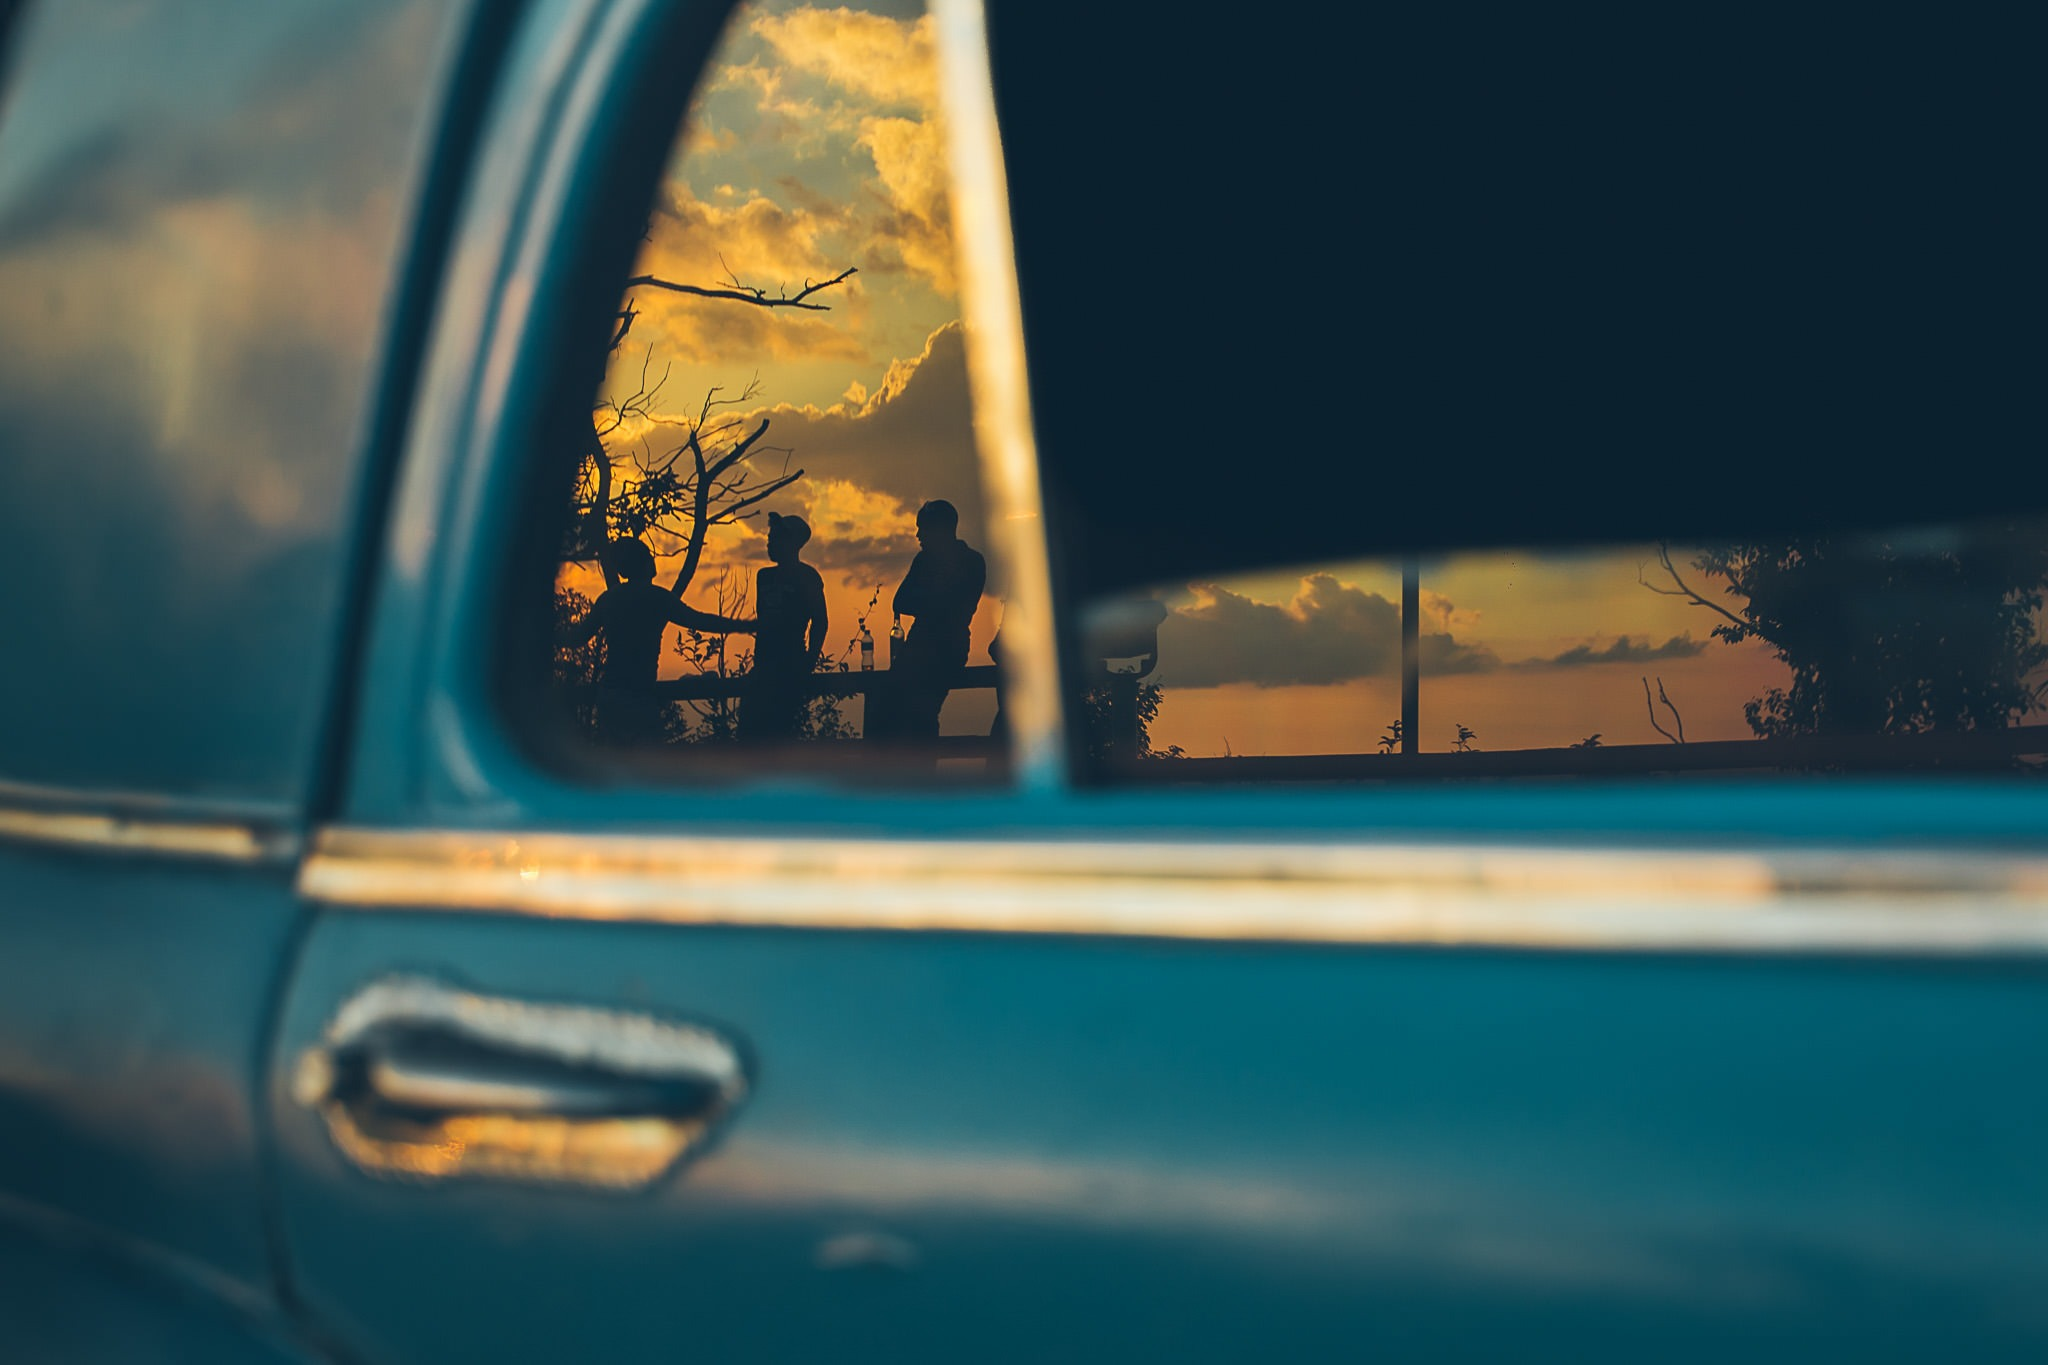 cuba car reflection print